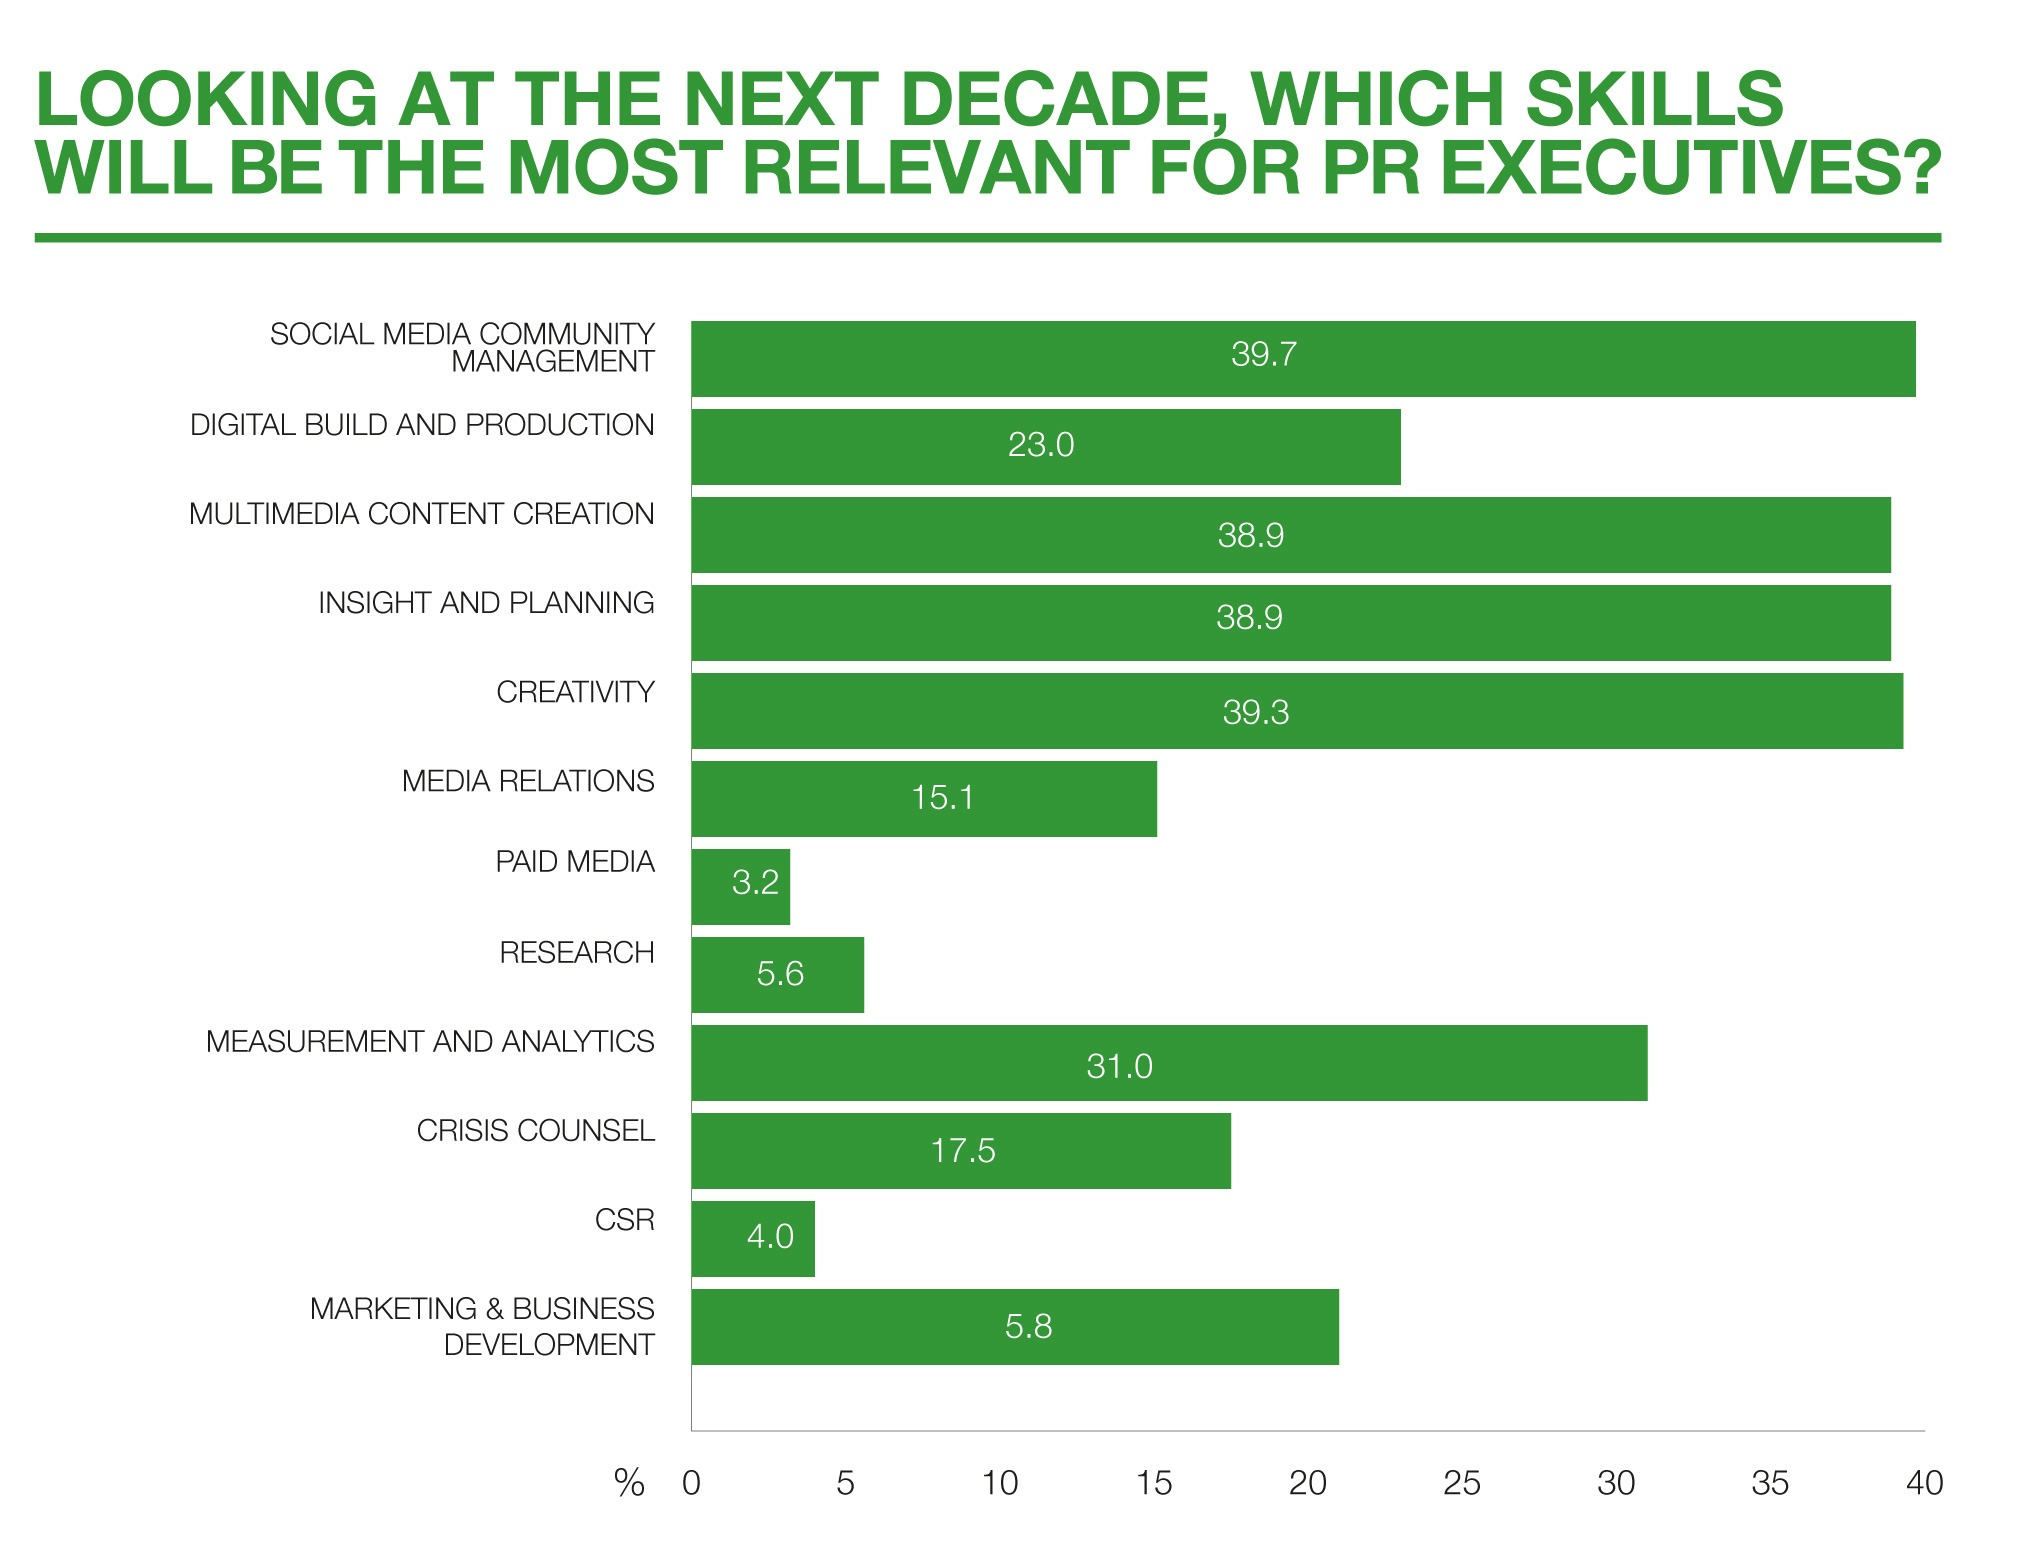 10-next-decade-relevant-skills-cropped